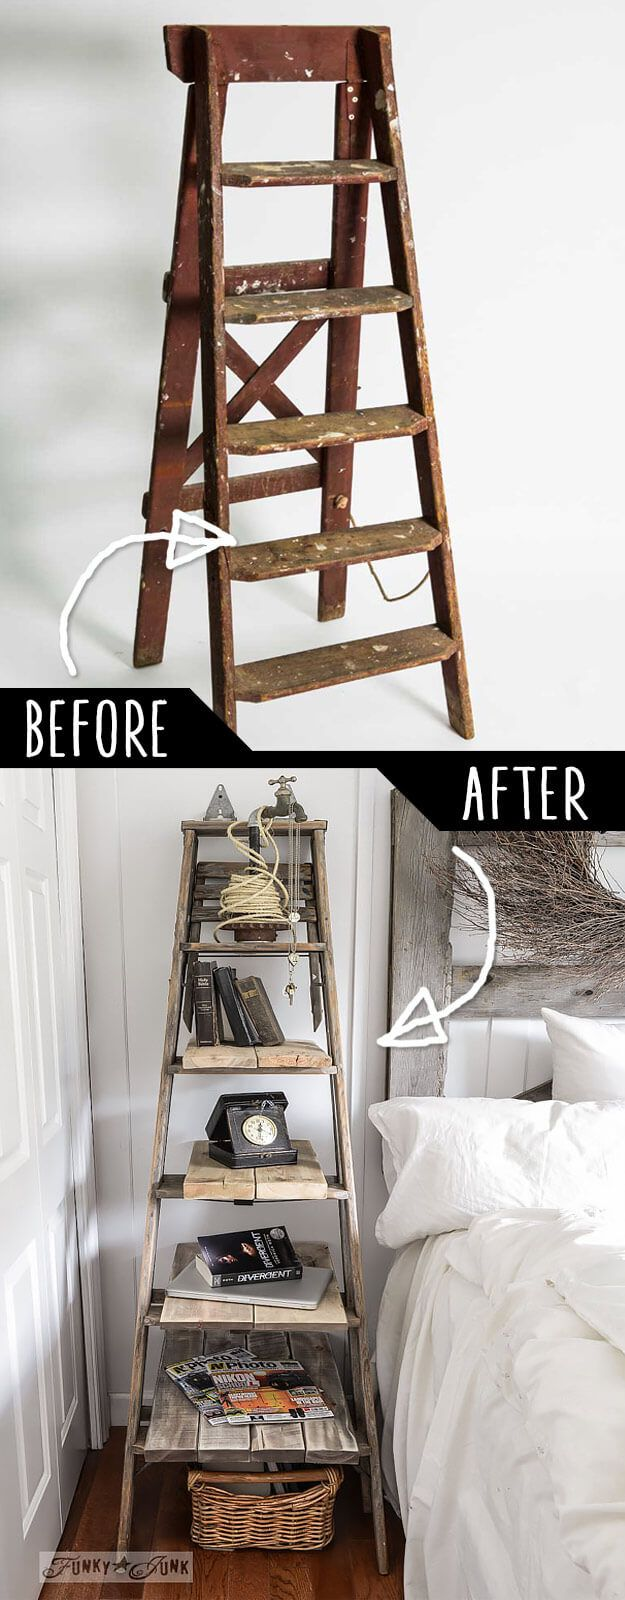 34 dreamy diy vintage decor ideas vintage vintage furniture and 34 dreamy diy vintage decor ideas solutioingenieria Images